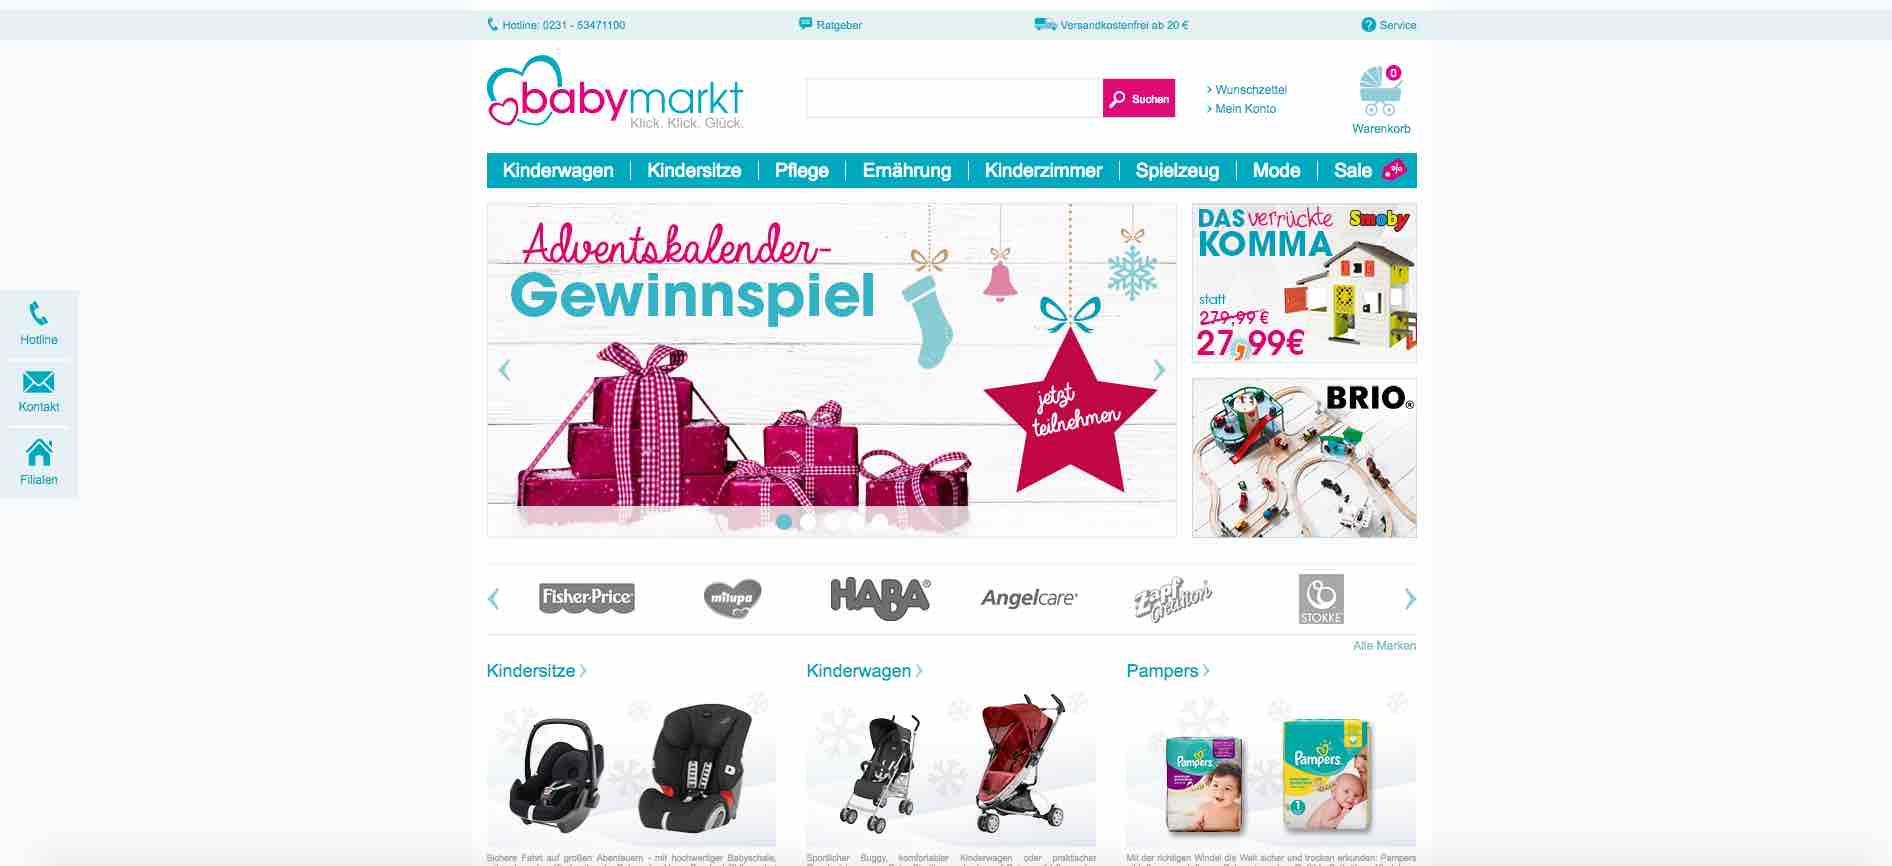 babymarkt adventskalender gewinnspiel 2016. Black Bedroom Furniture Sets. Home Design Ideas